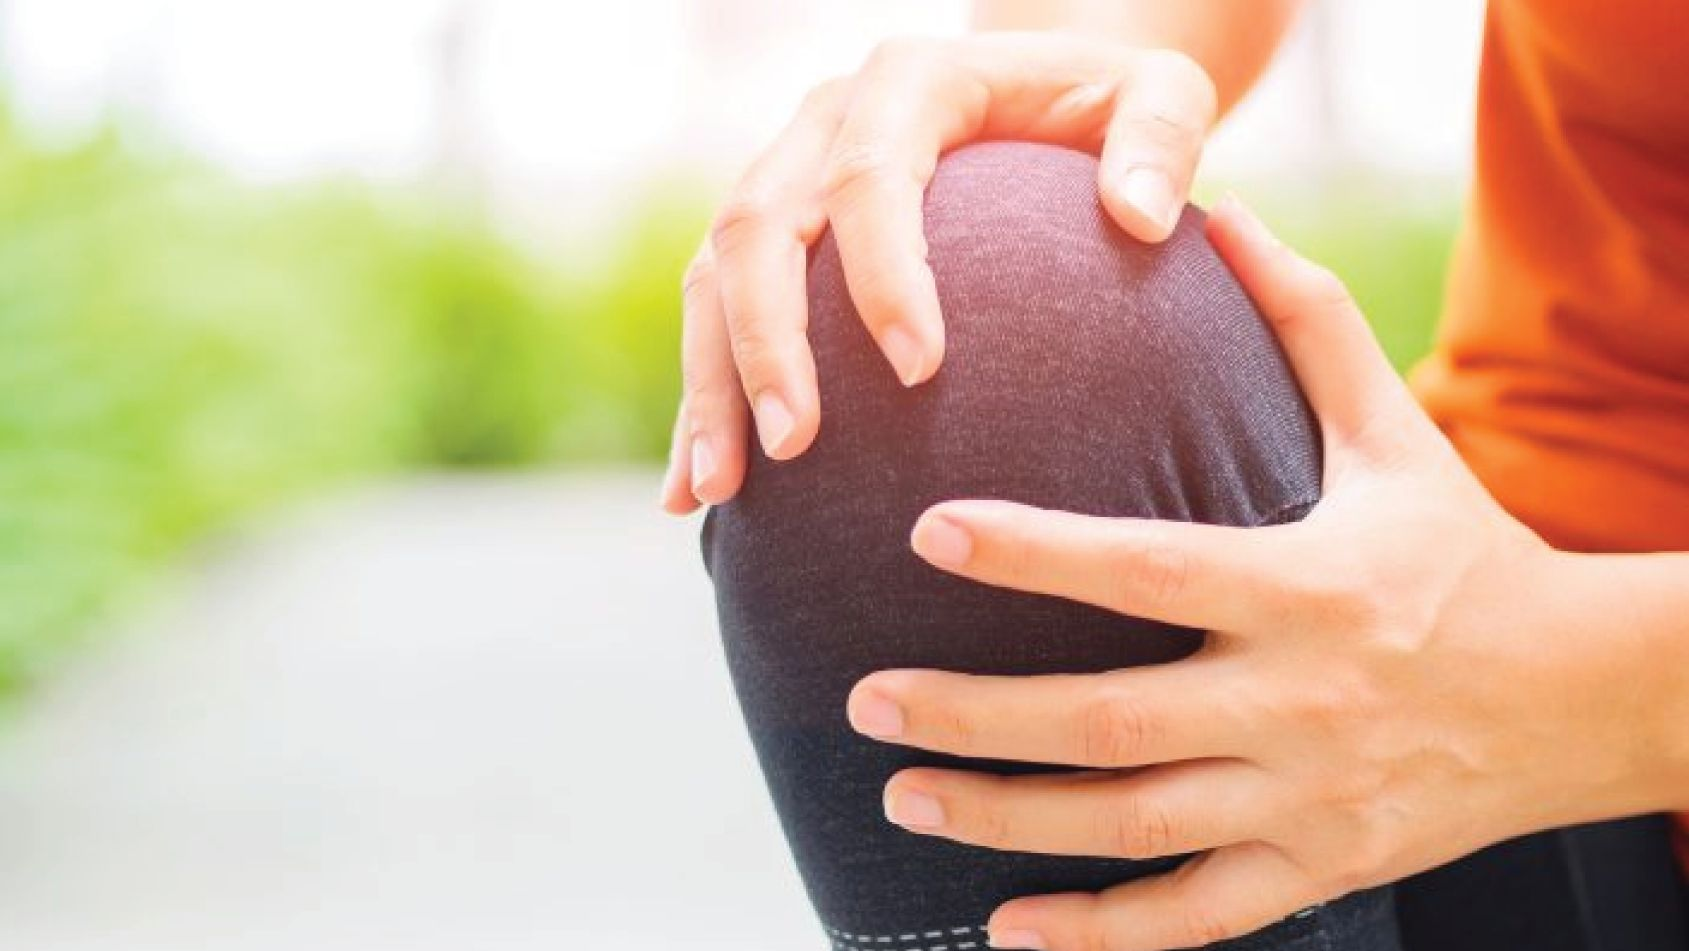 REASONS BEHIND ACL ANTERIOR CRUCIATE LIGAMENT INJURY